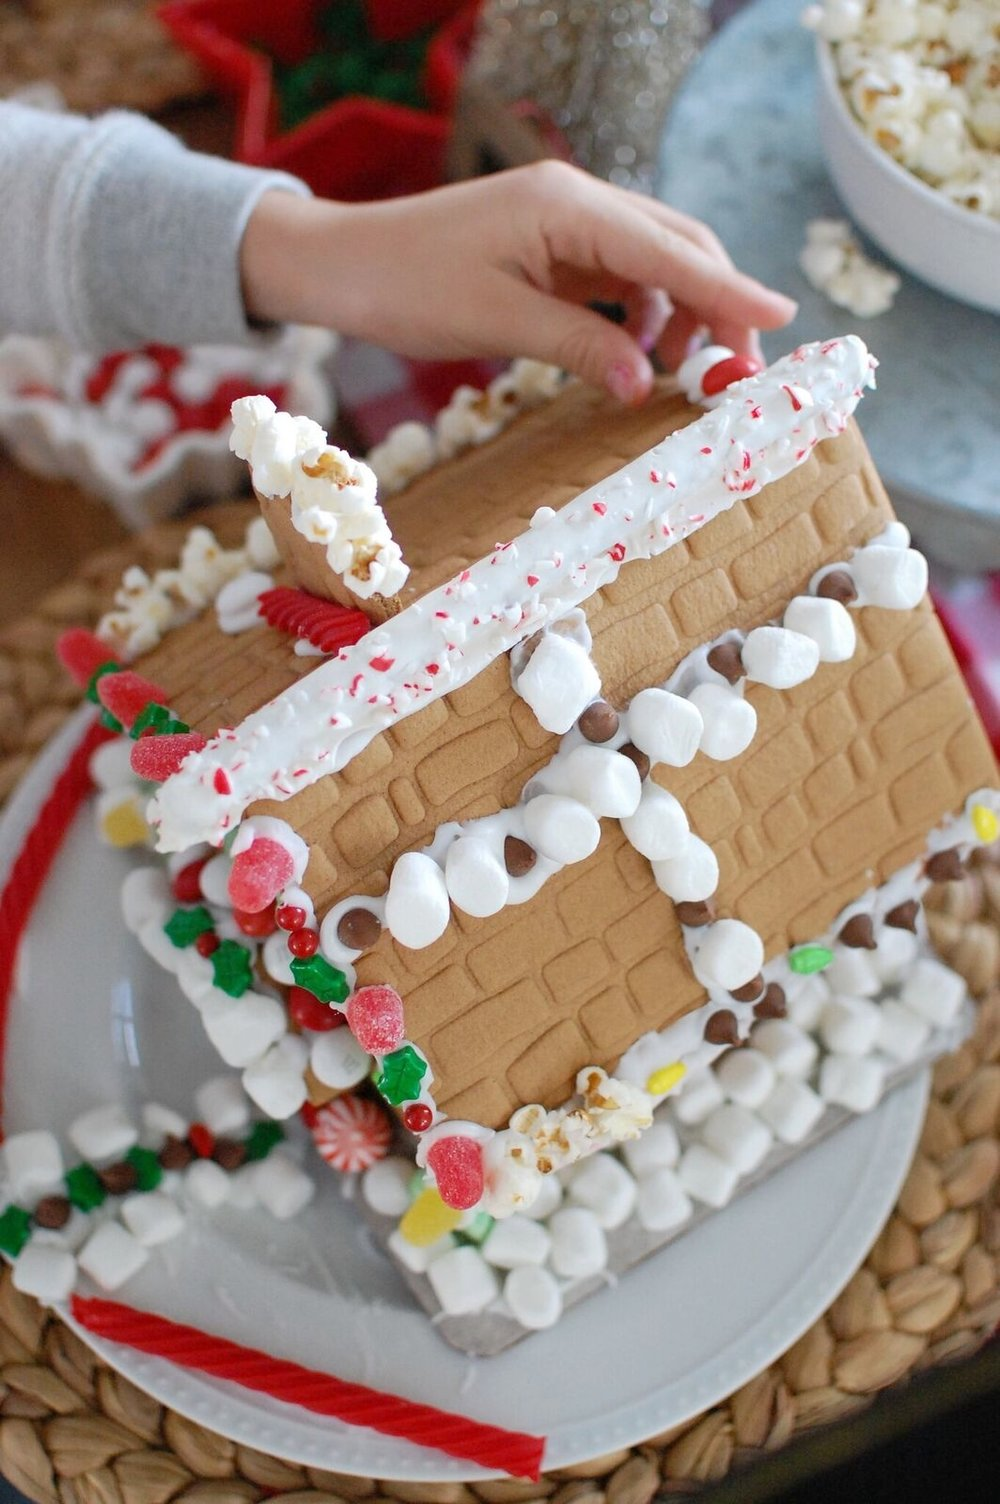 Gingerbread house making